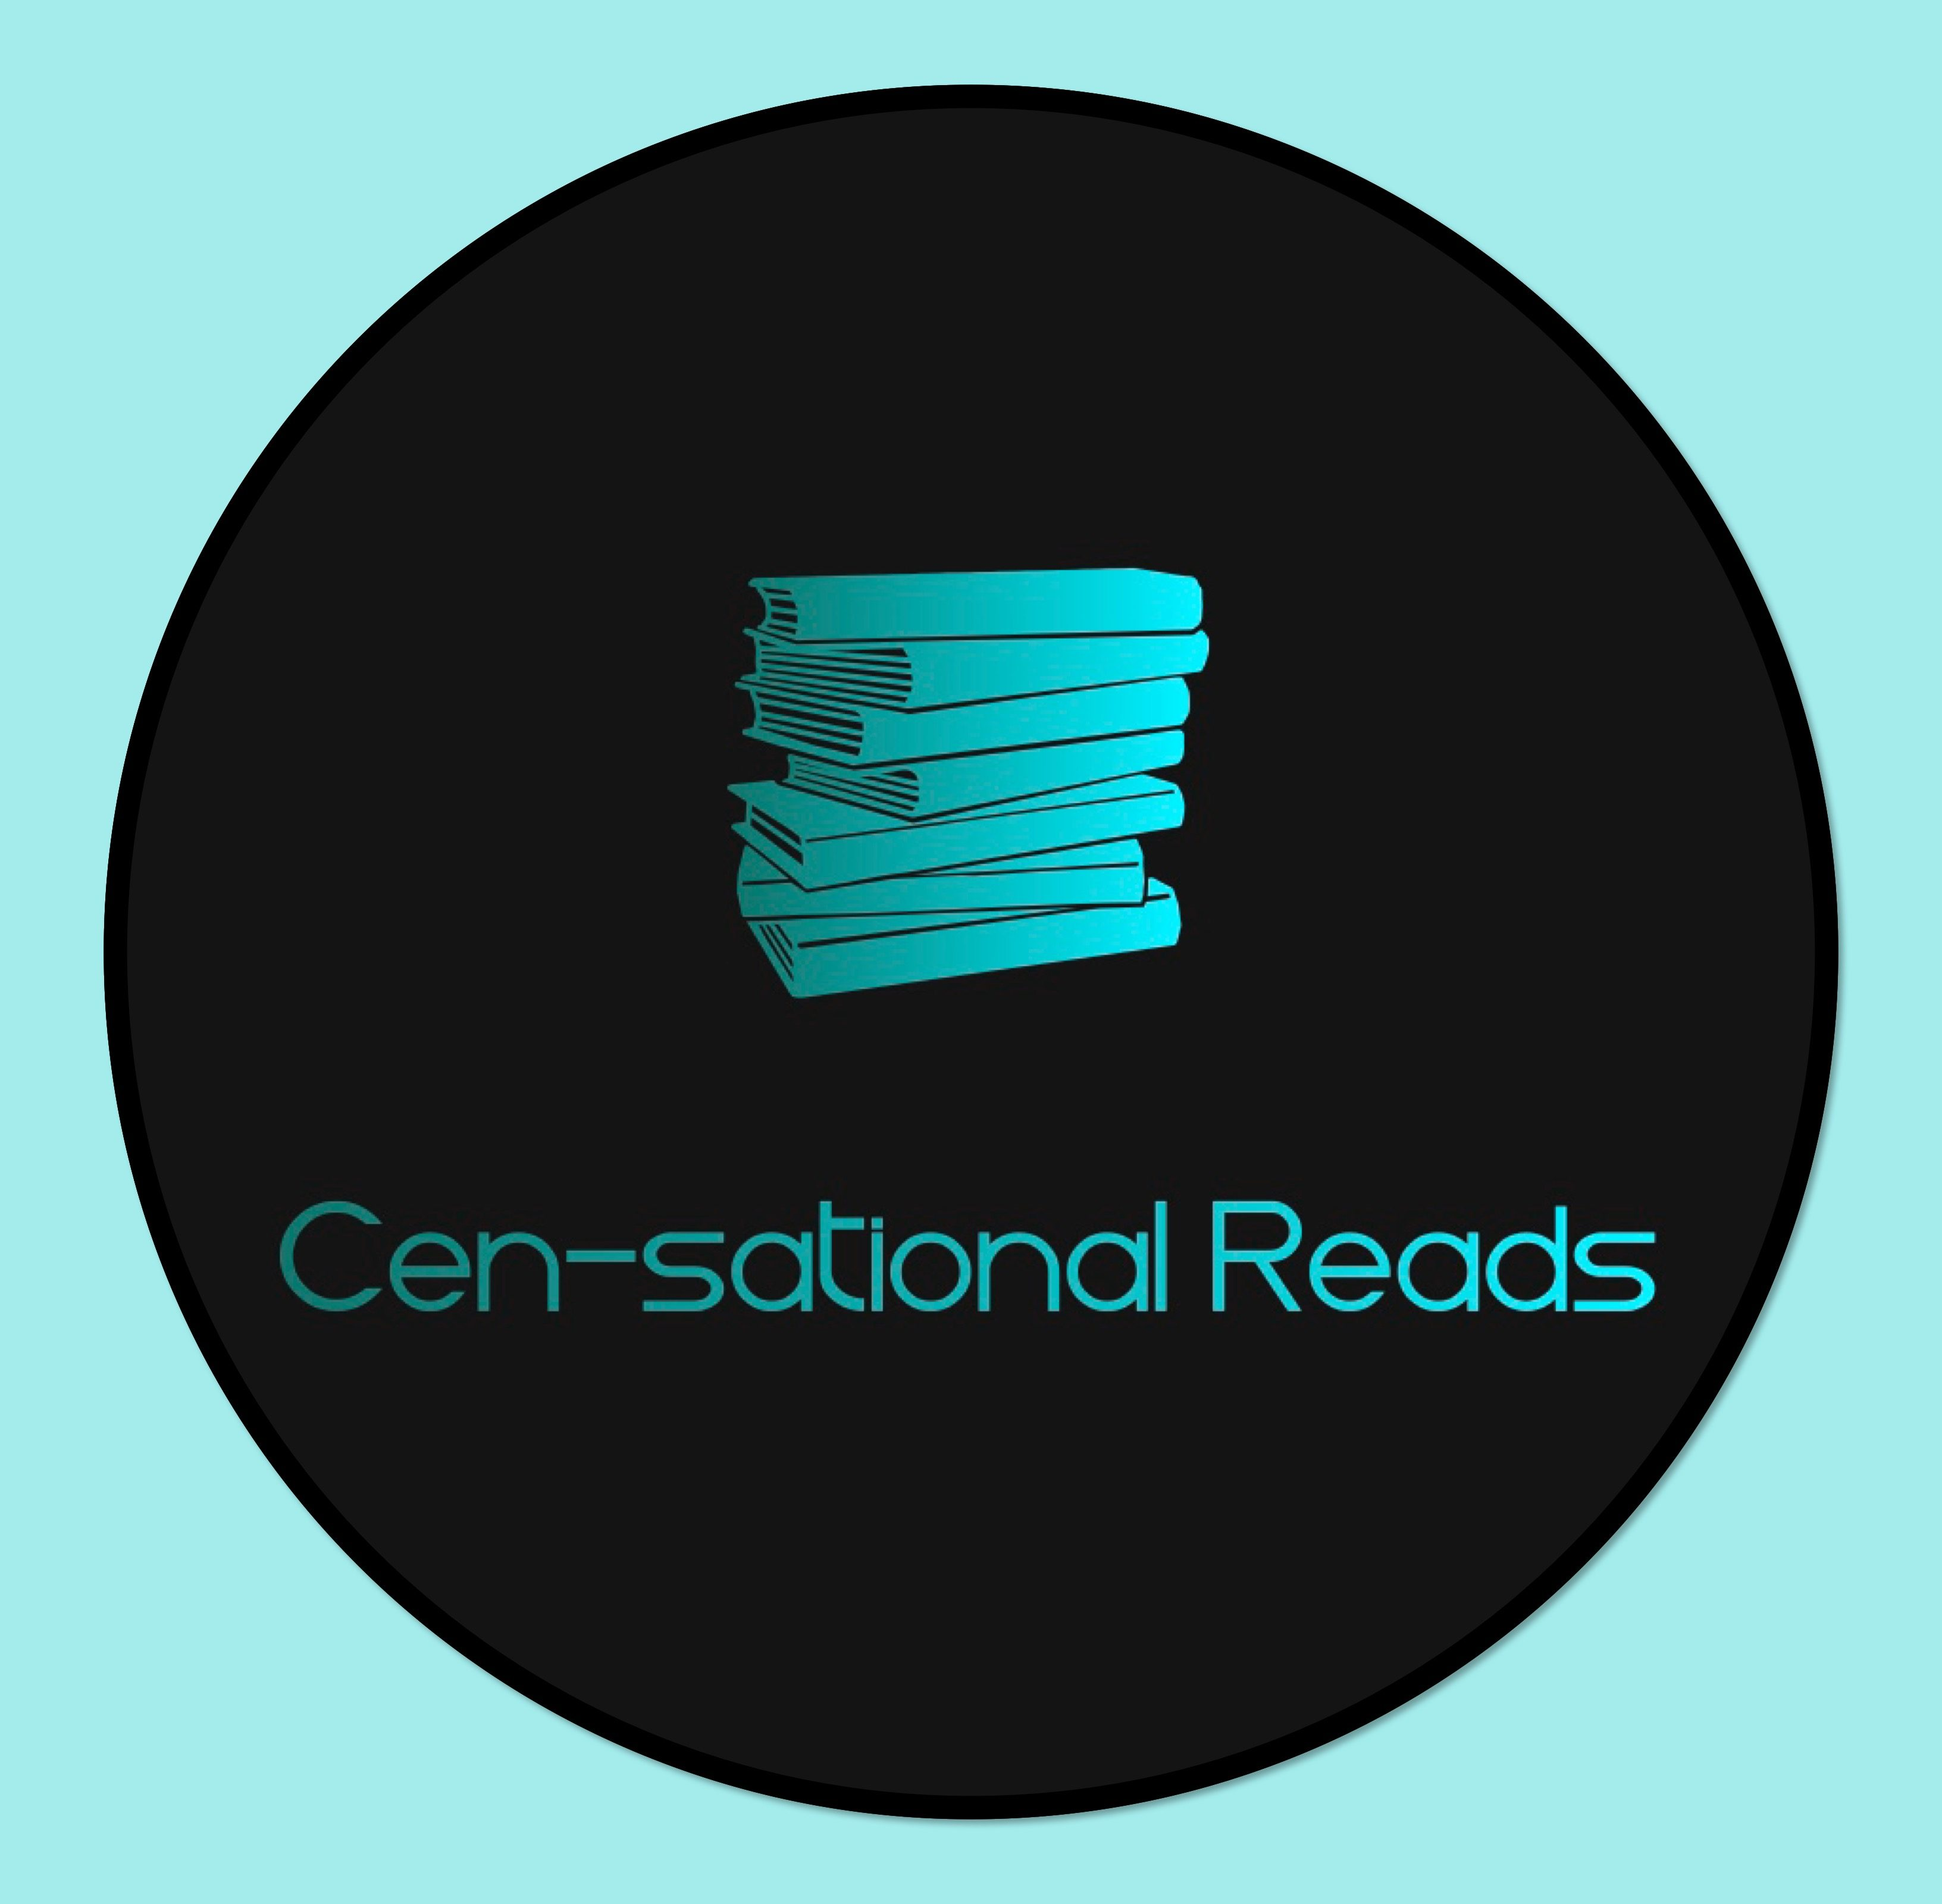 Cen-sational Reads